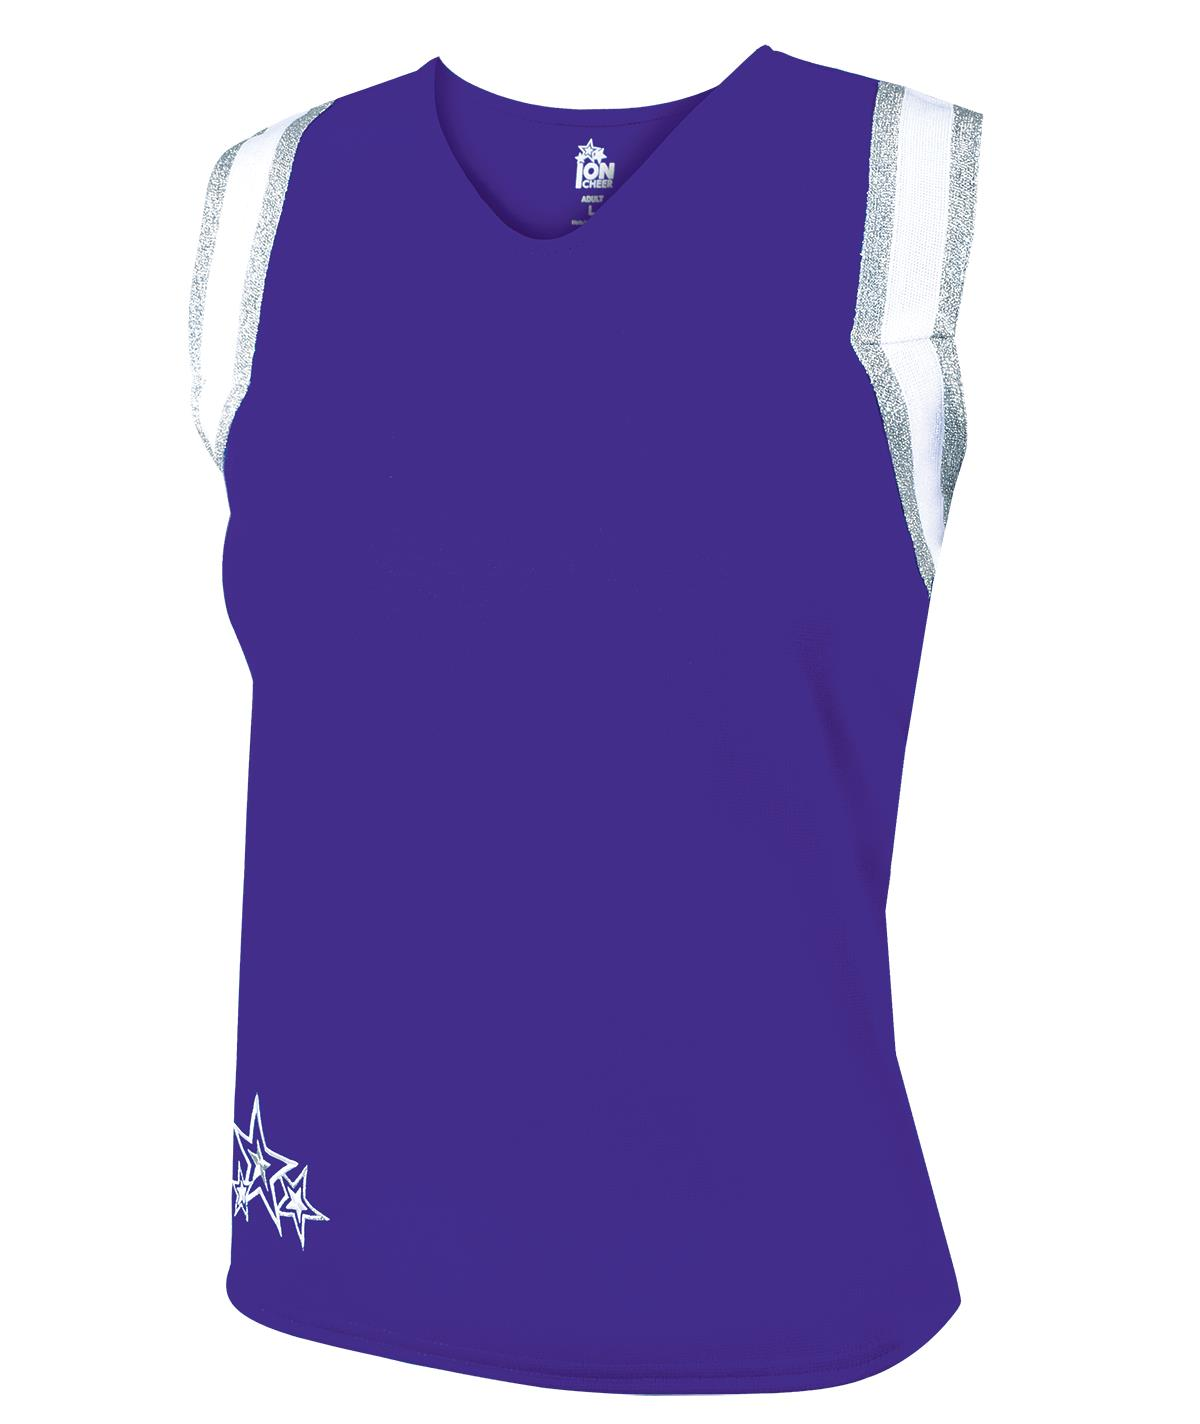 Ion Cheer Aspiration Shell Top